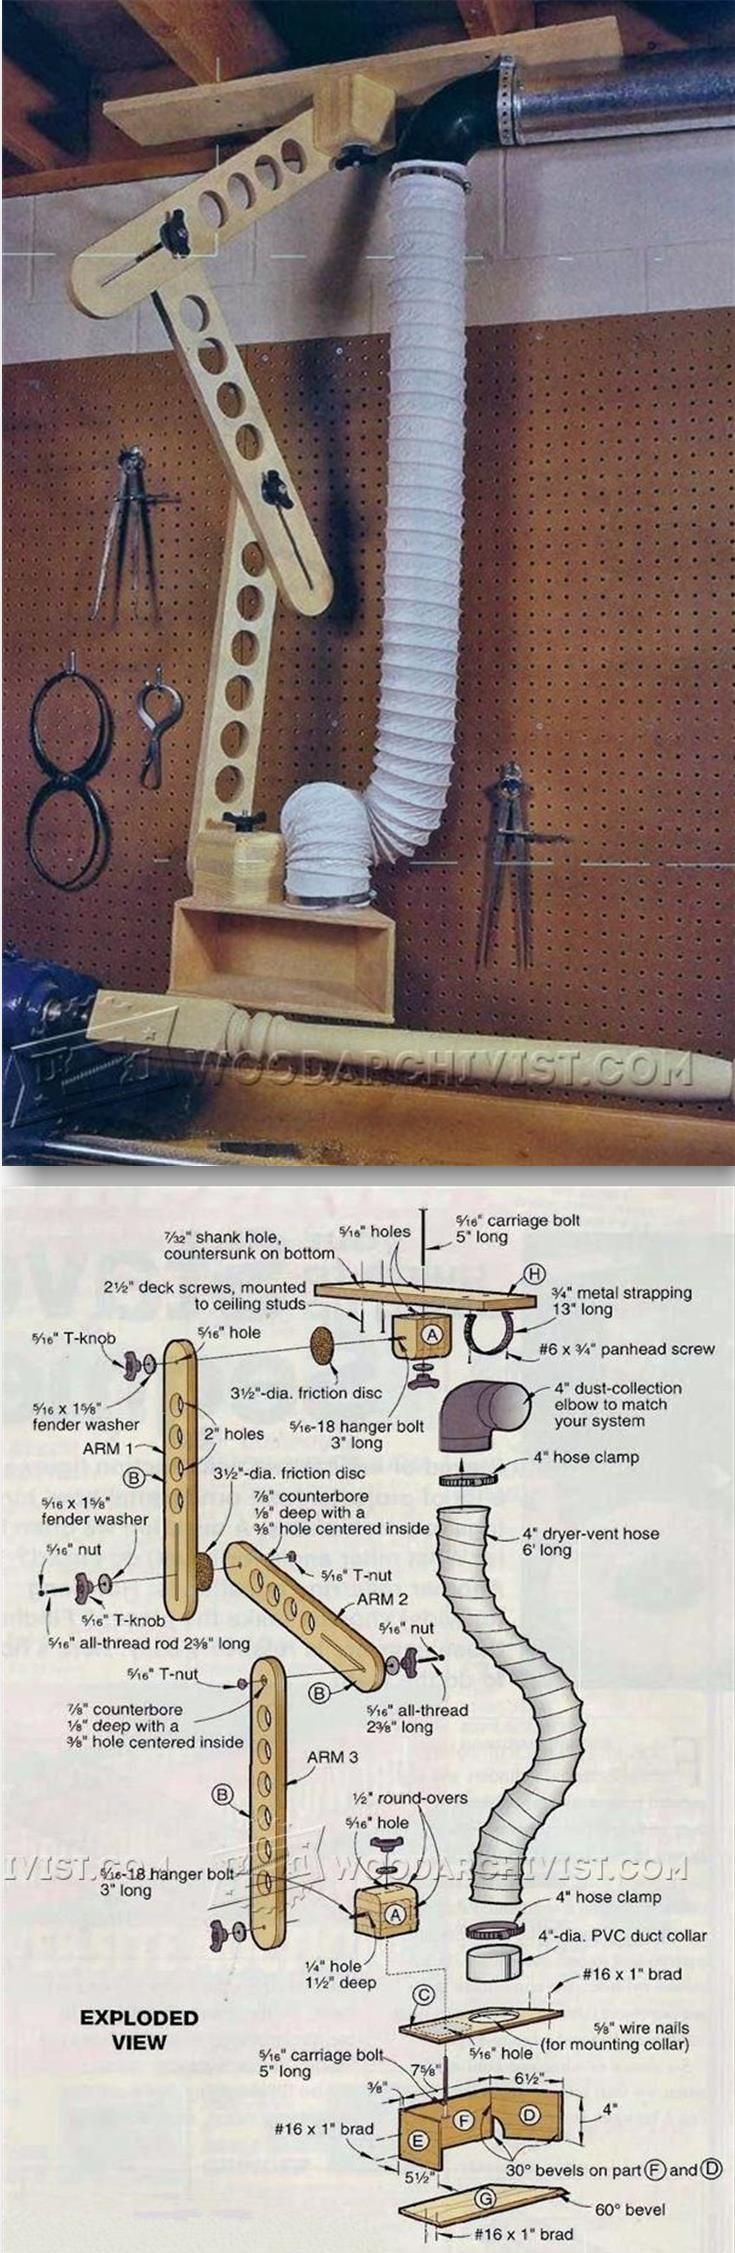 Lathe Dust Collection Boom Arm - Dust Collection Tips, Jigs and Fixtures | WoodArchivist.com